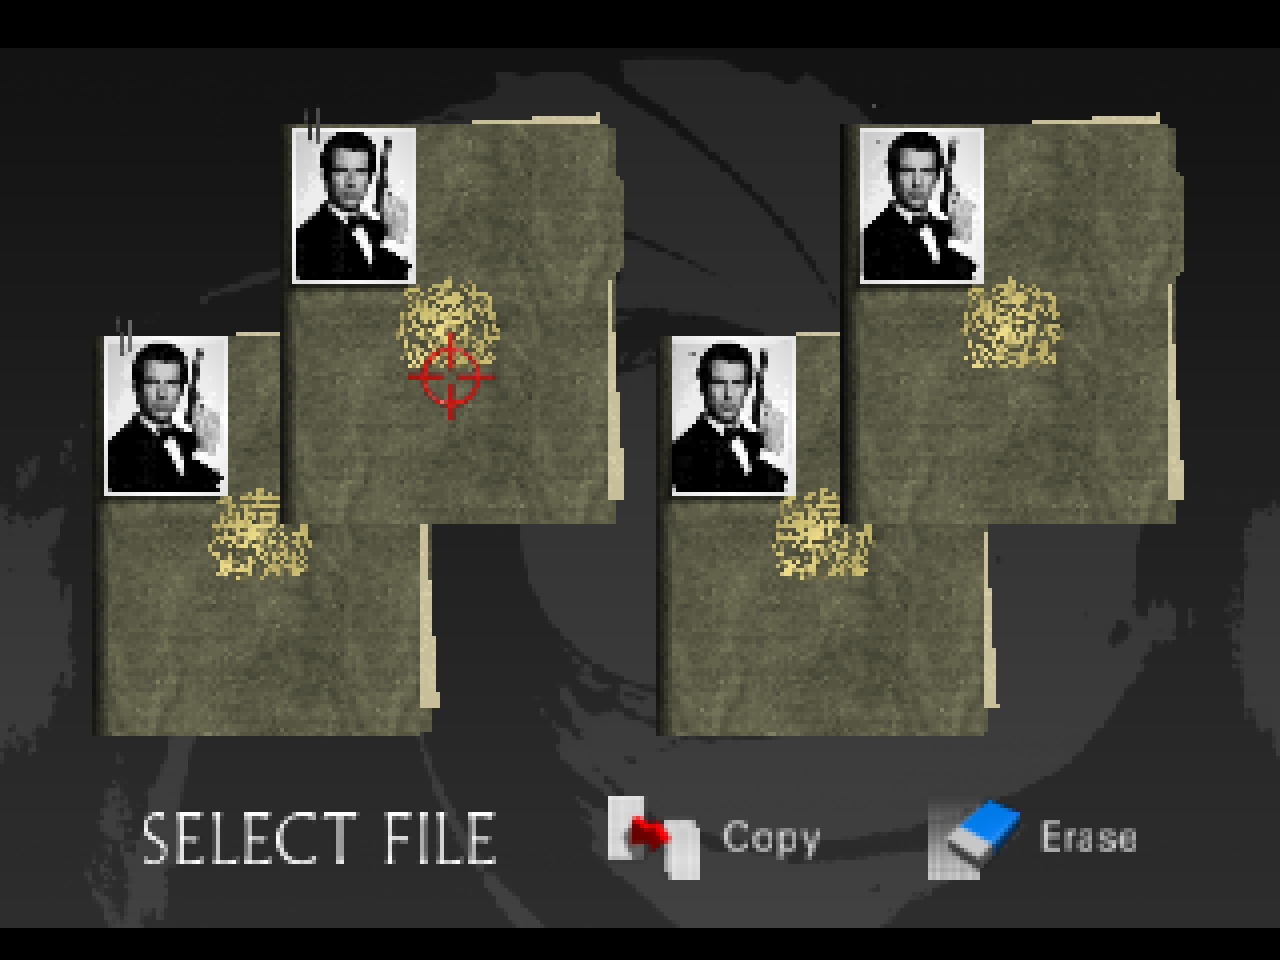 https://s3.eu-west-3.amazonaws.com/games.anthony-dessalles.com/GoldenEye 007 N64 2020 - Screenshots/GoldenEye 007-201118-172944.png